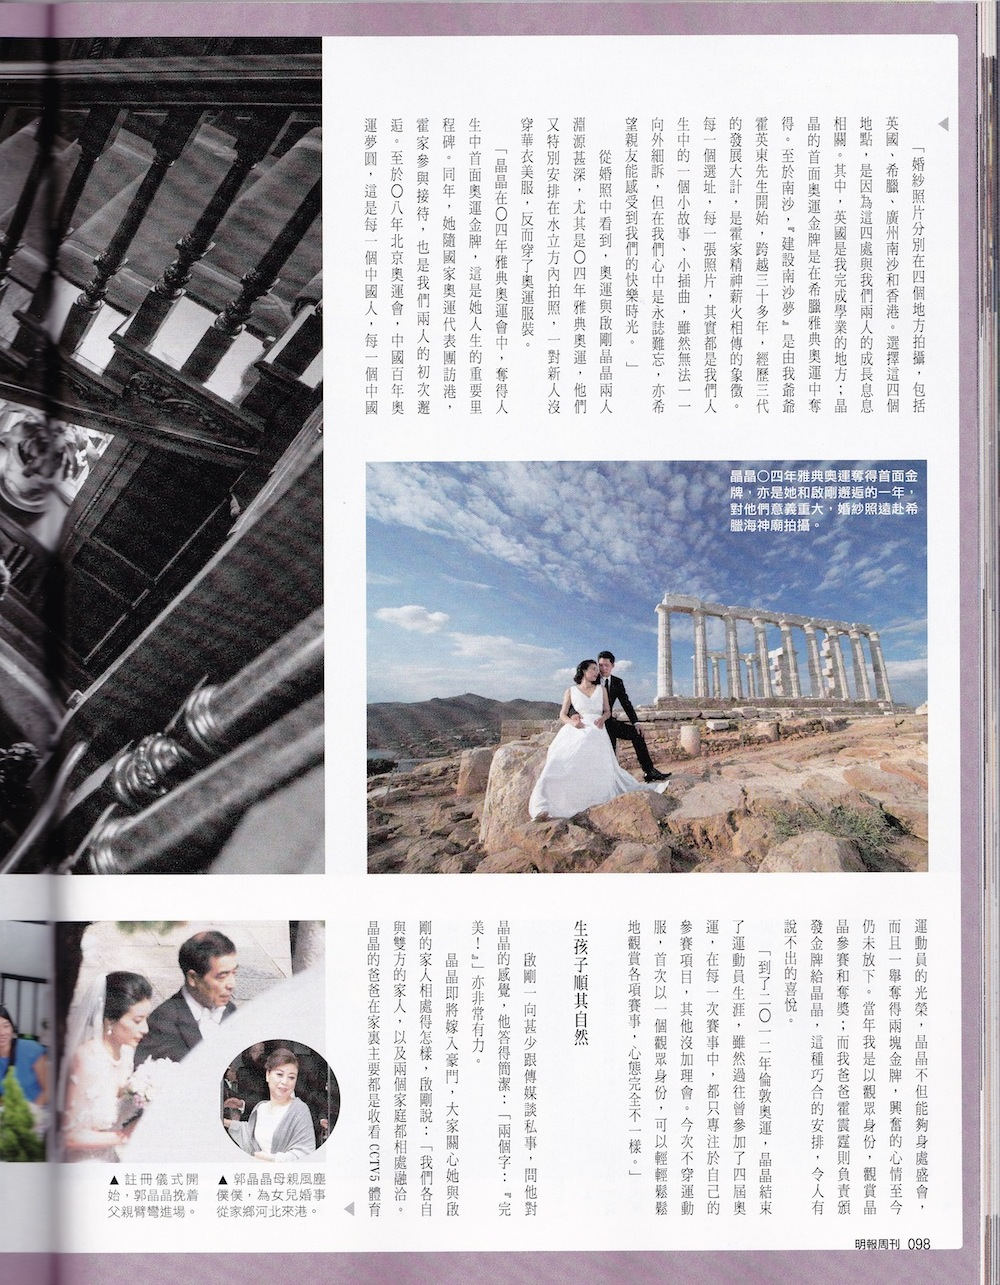 kenneth jingjing5 拷貝1 Mingpao Weekly coverage on Guo Jingjing & Kenneth Foks wedding